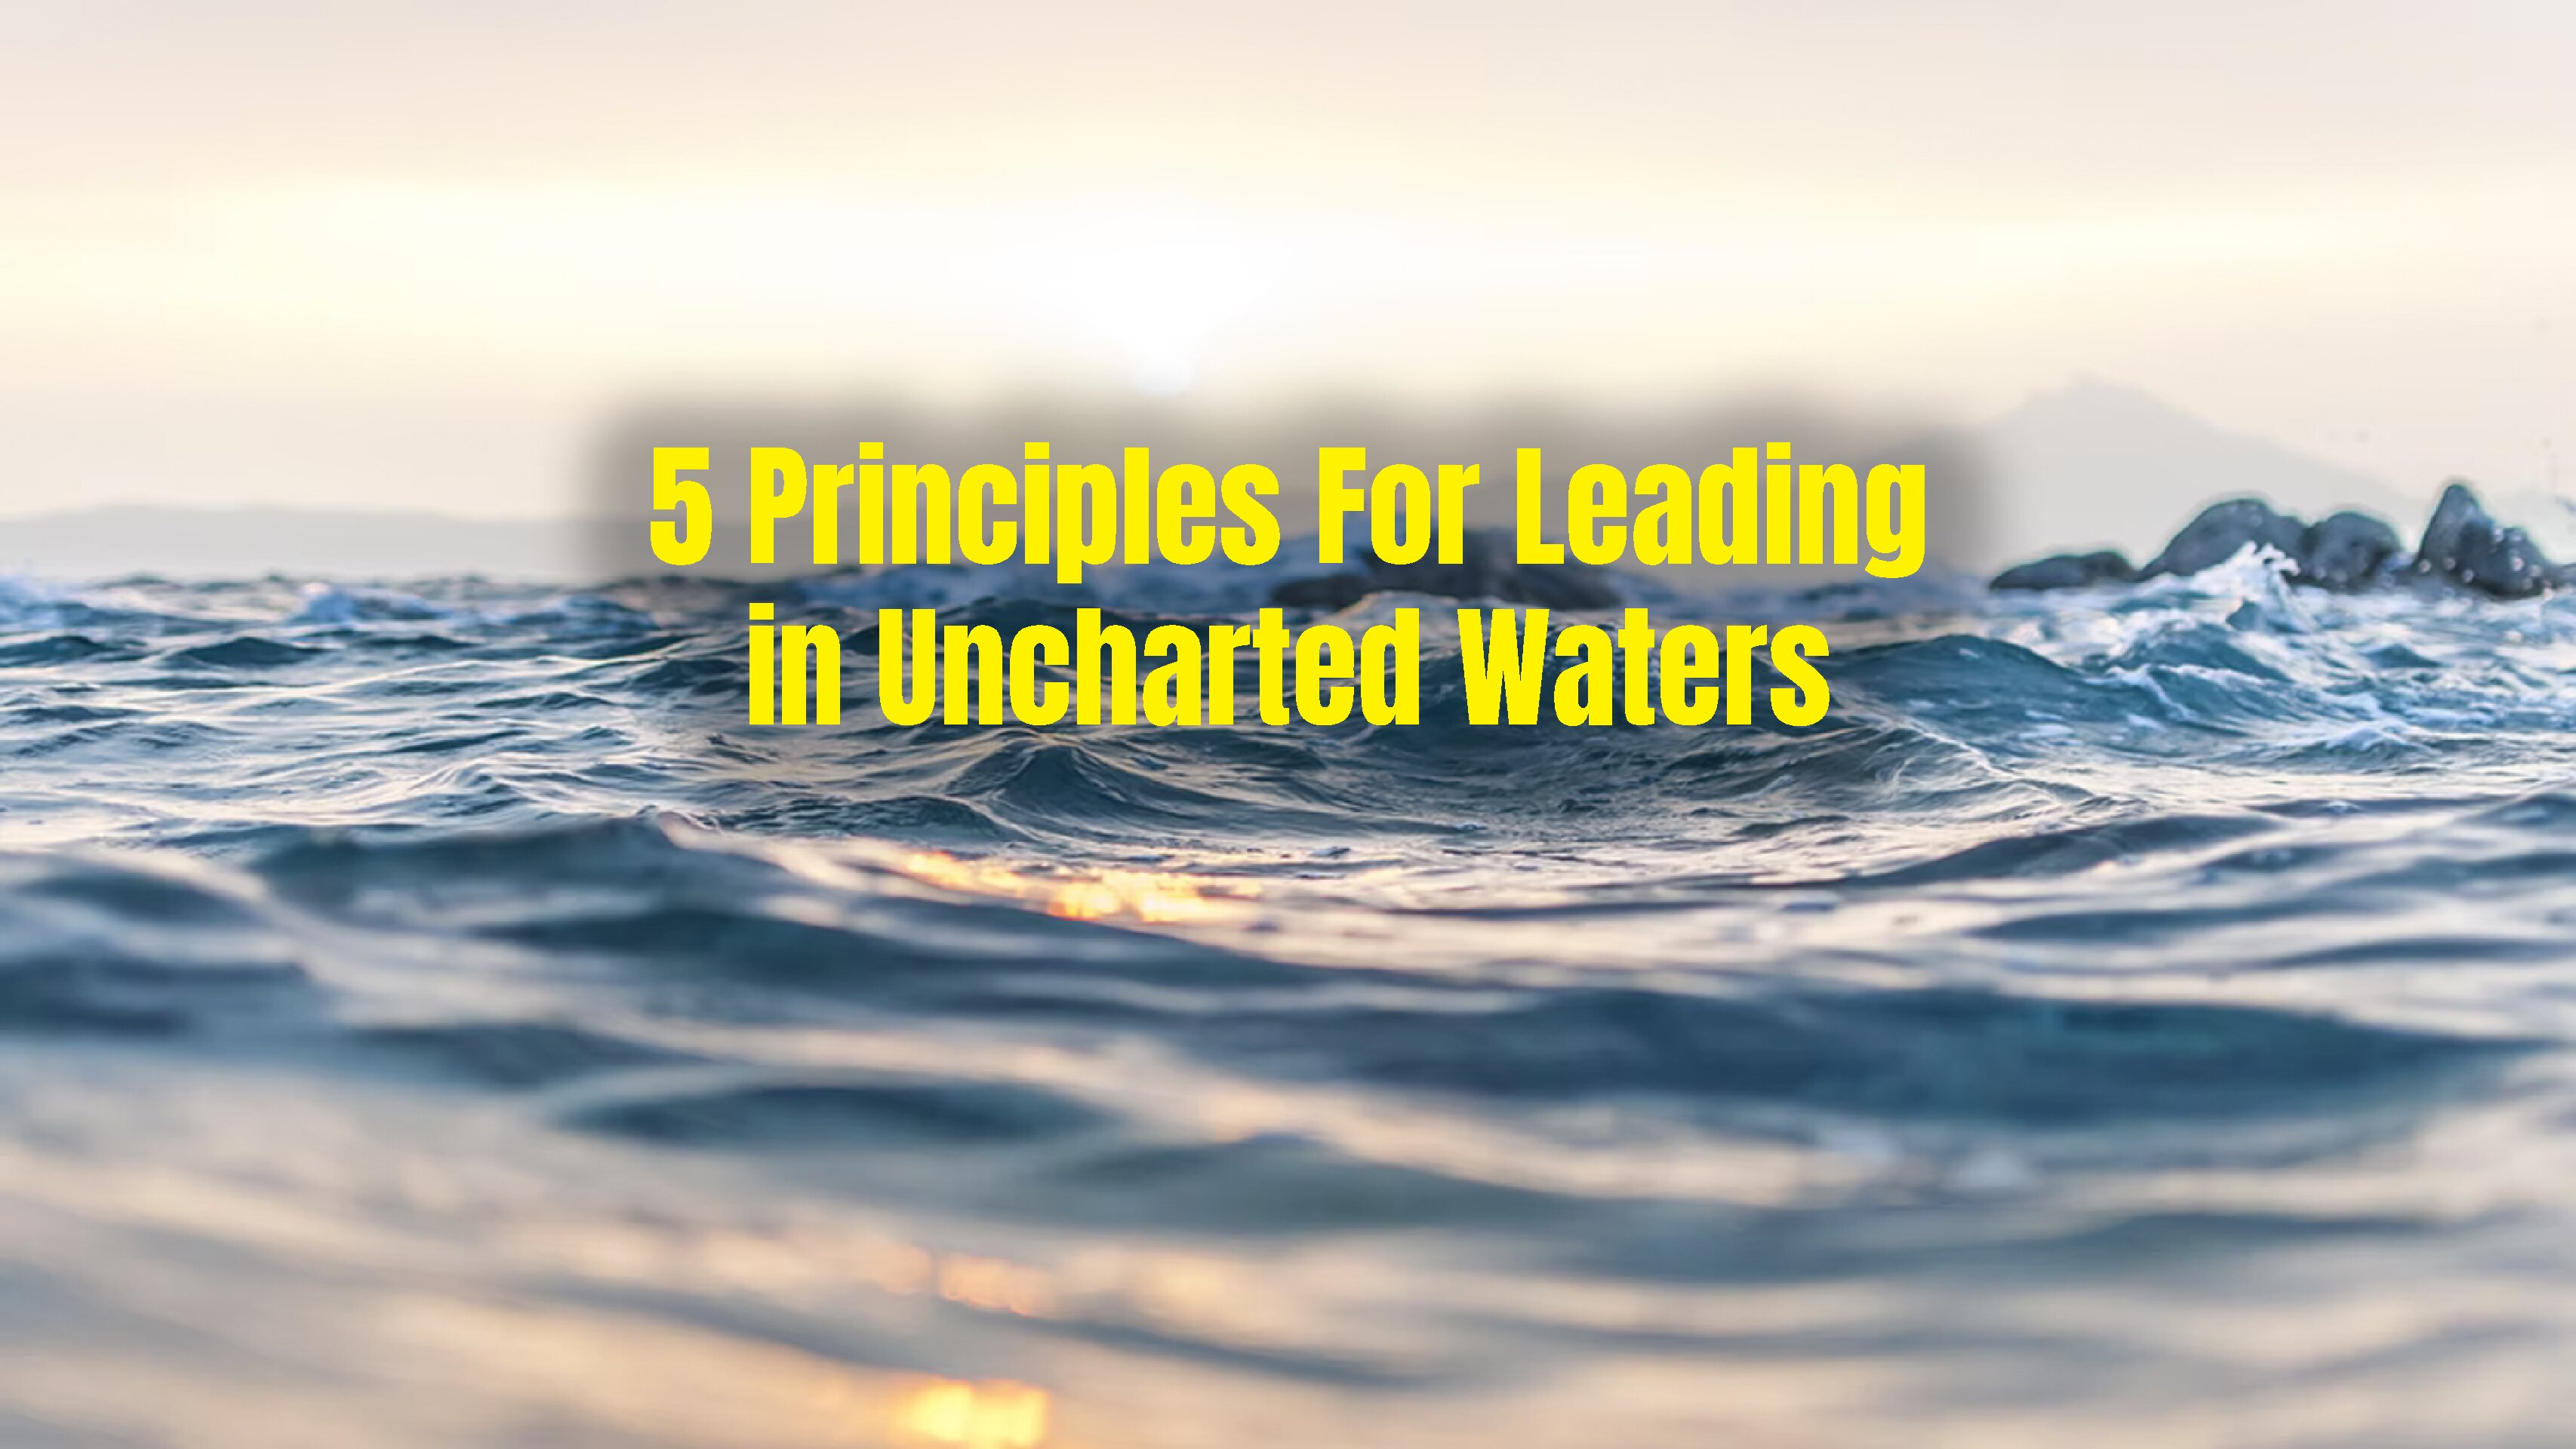 5 Principles For Leading in Uncharted Waters